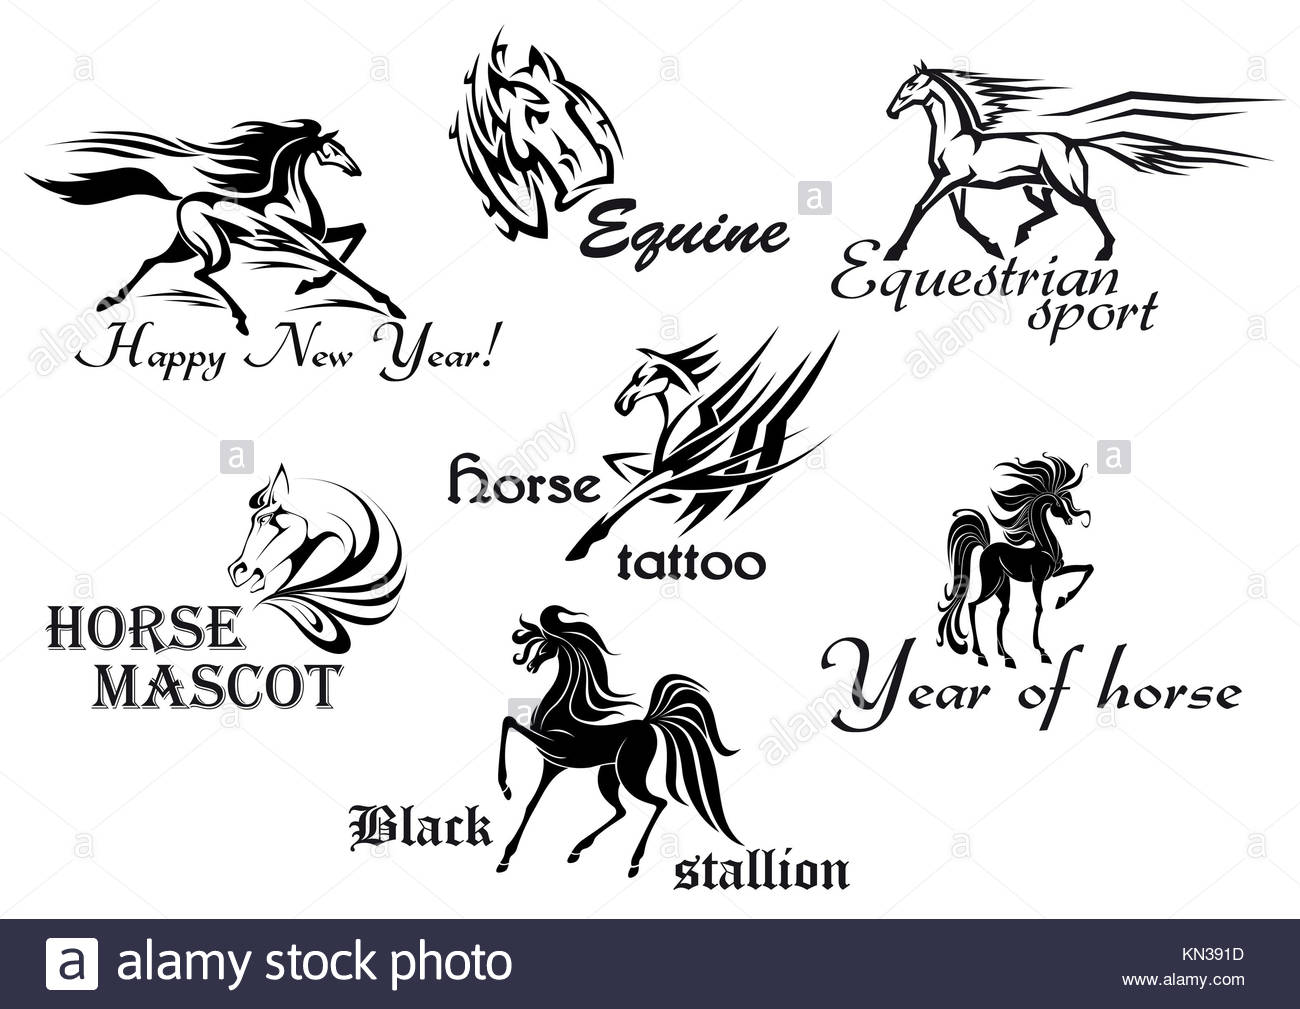 Horses stallions and mustangs for tattoo or mascot design. - Stock Image